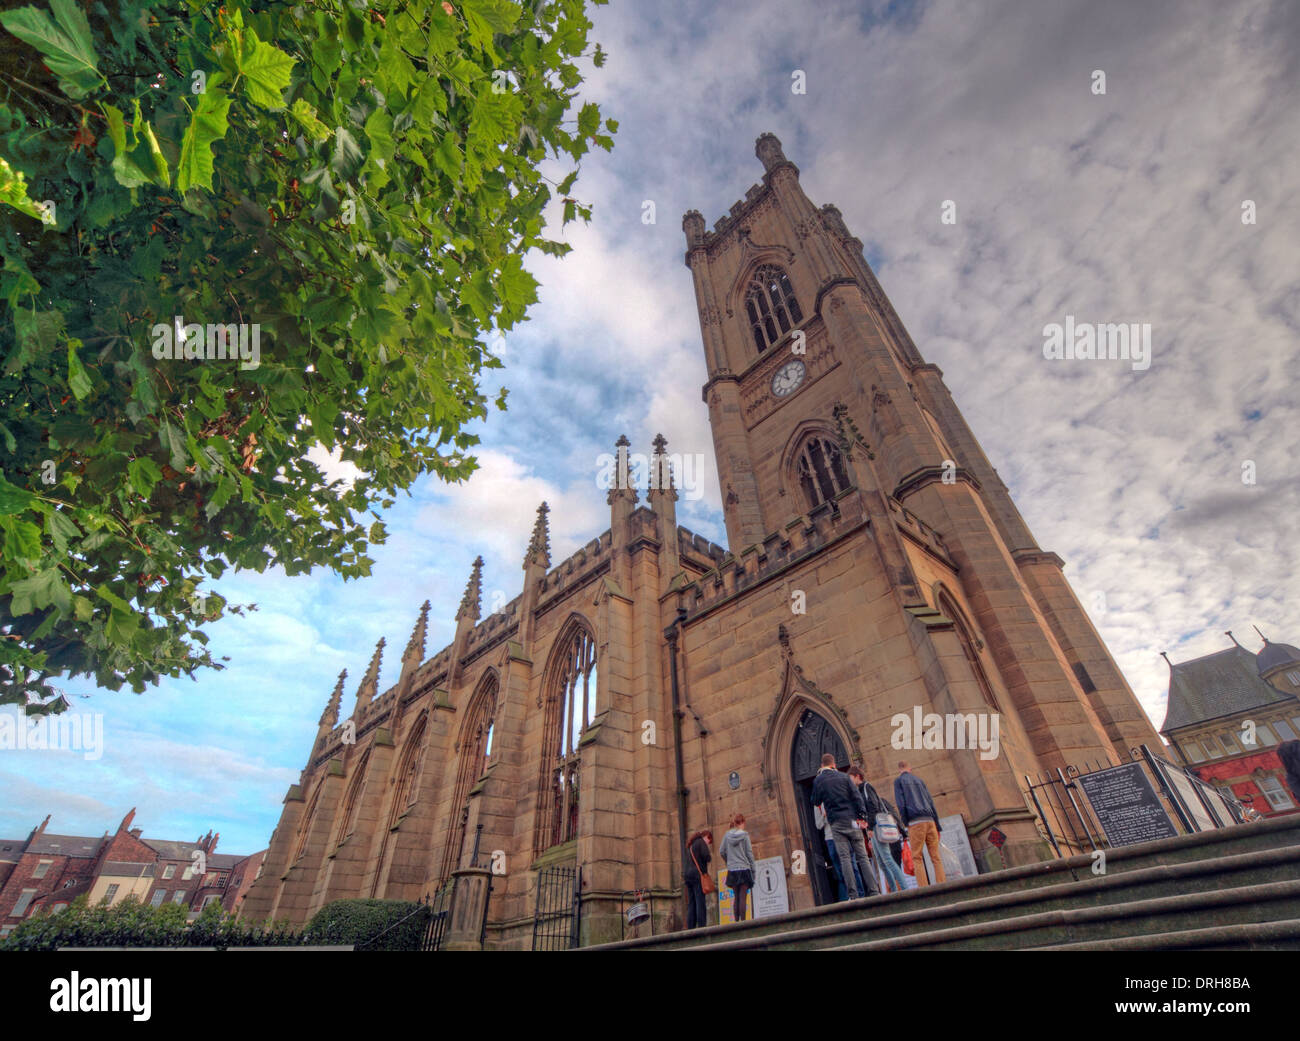 St Luke's Church, Liverpool, is a former Anglican parish church, known locally as the Bombed Out Church - Stock Image